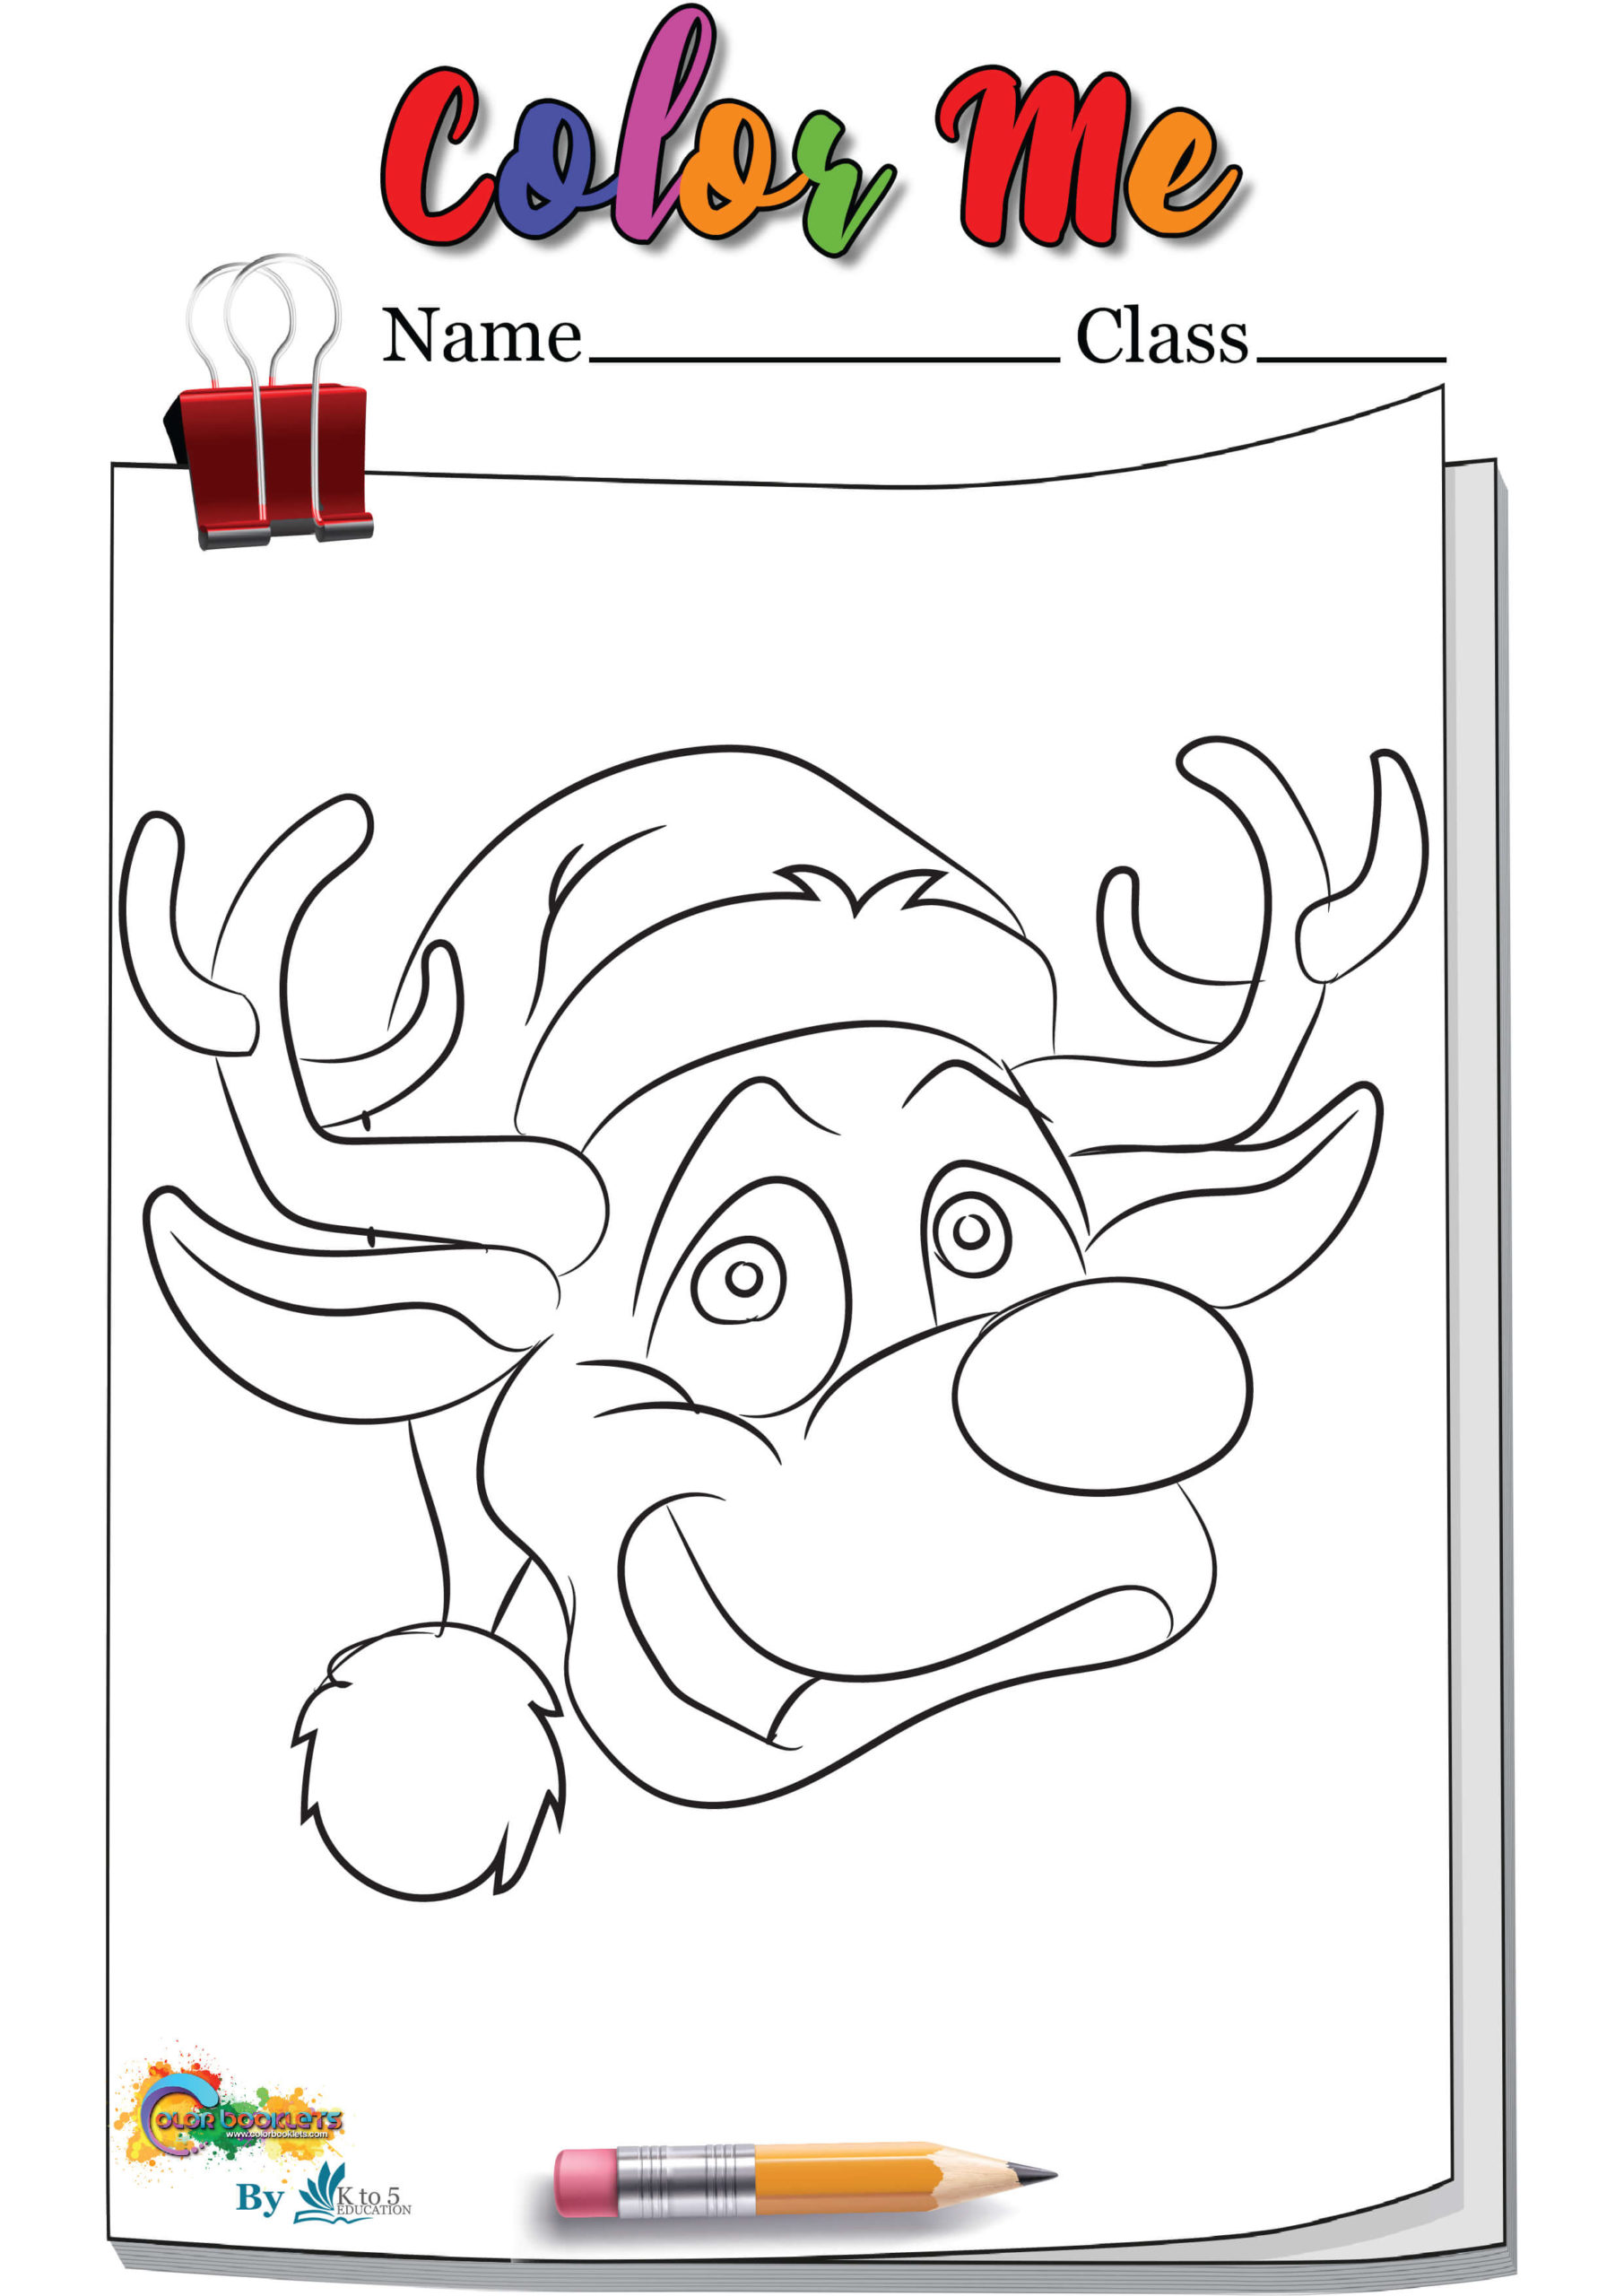 Deer cartoon wearing hat coloring page